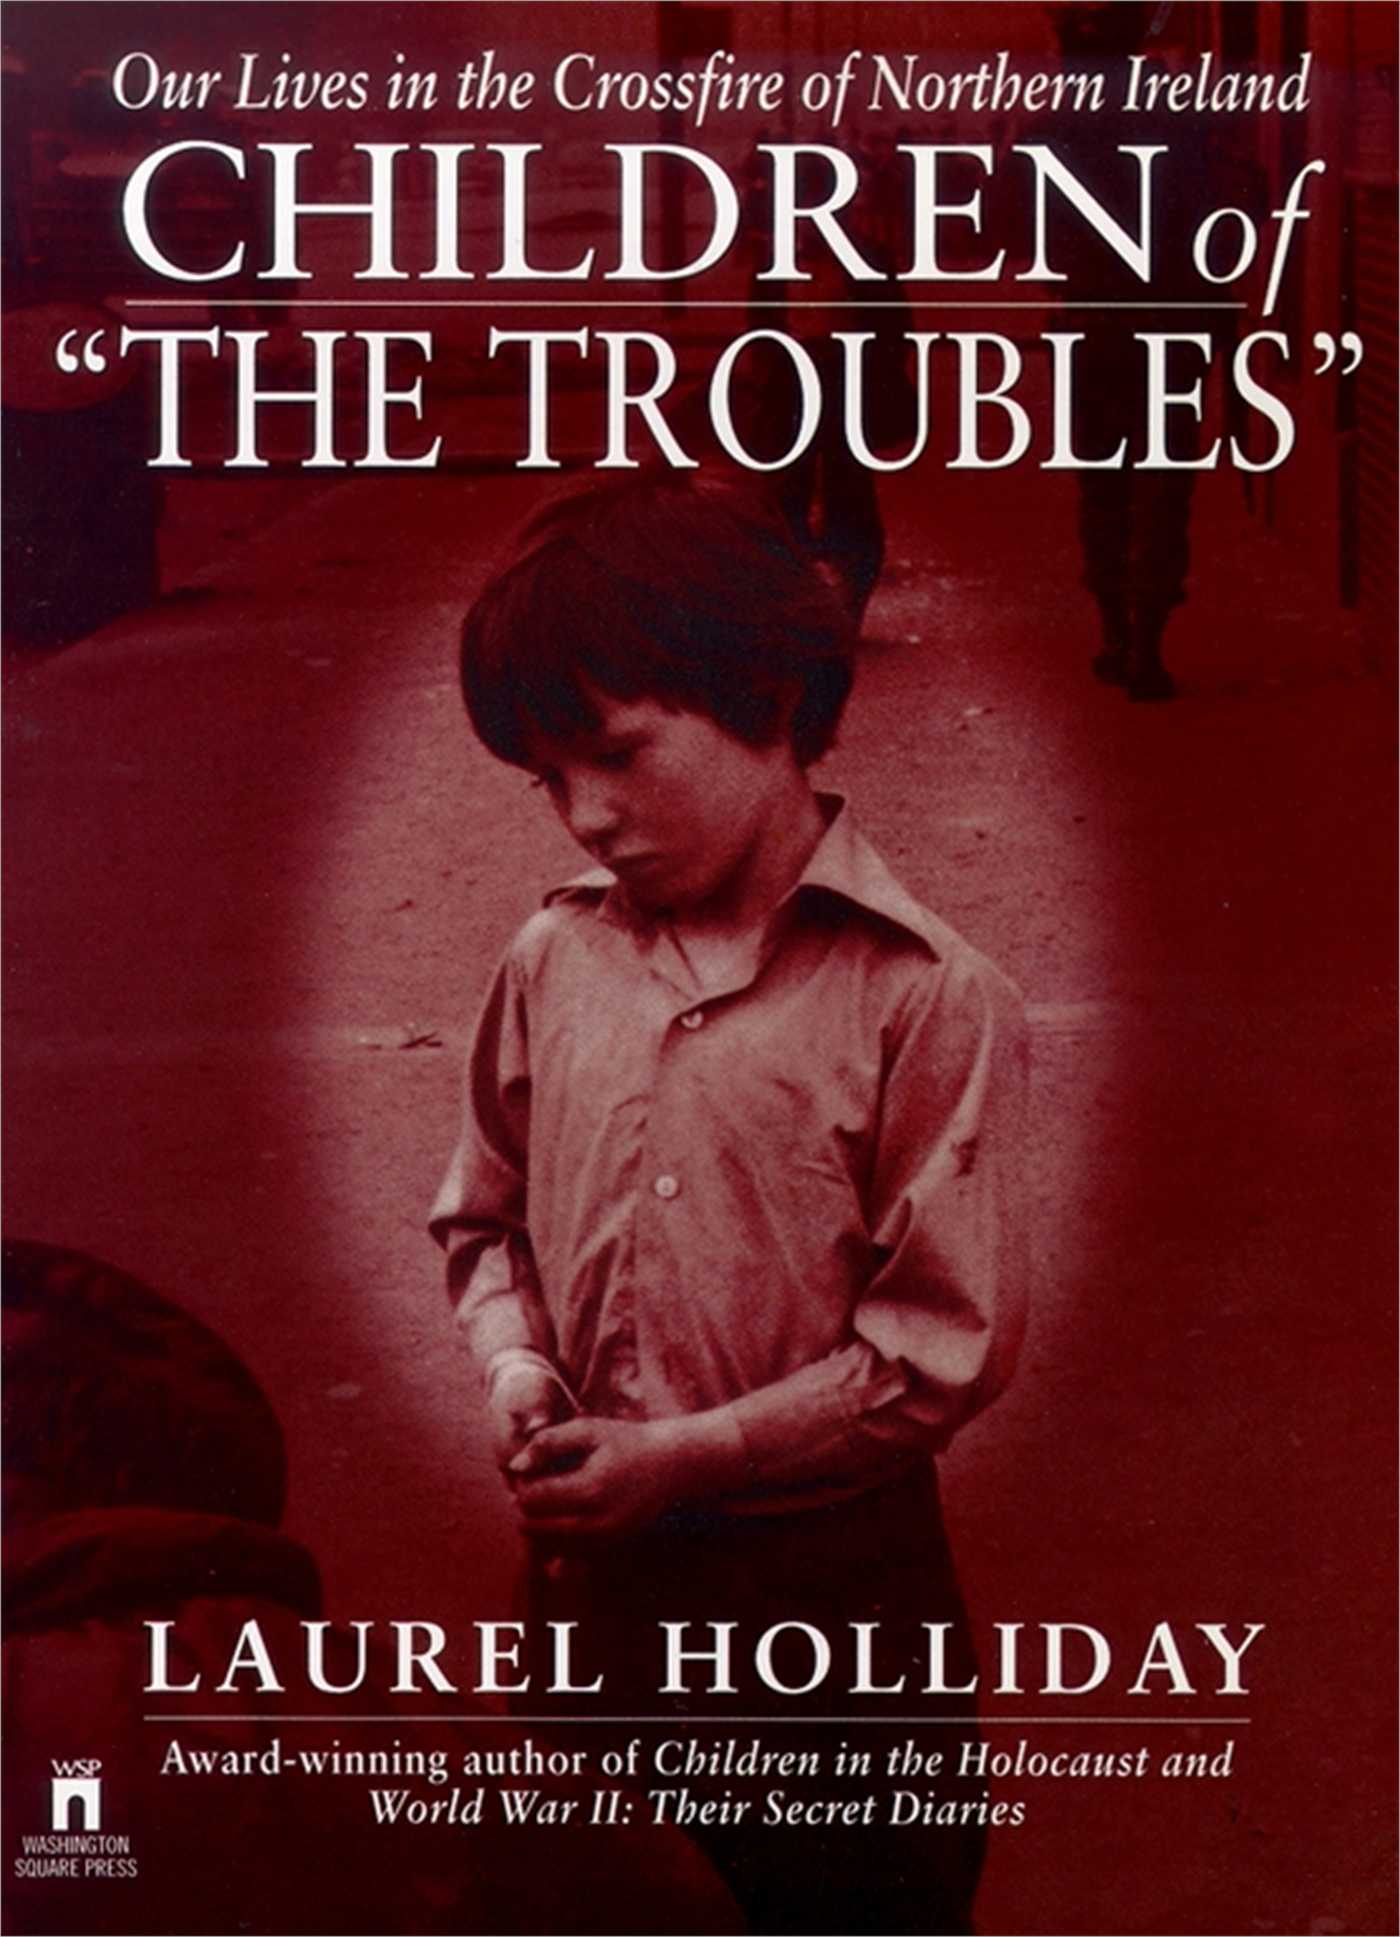 Children-of-the-troubles-9781476775333_hr